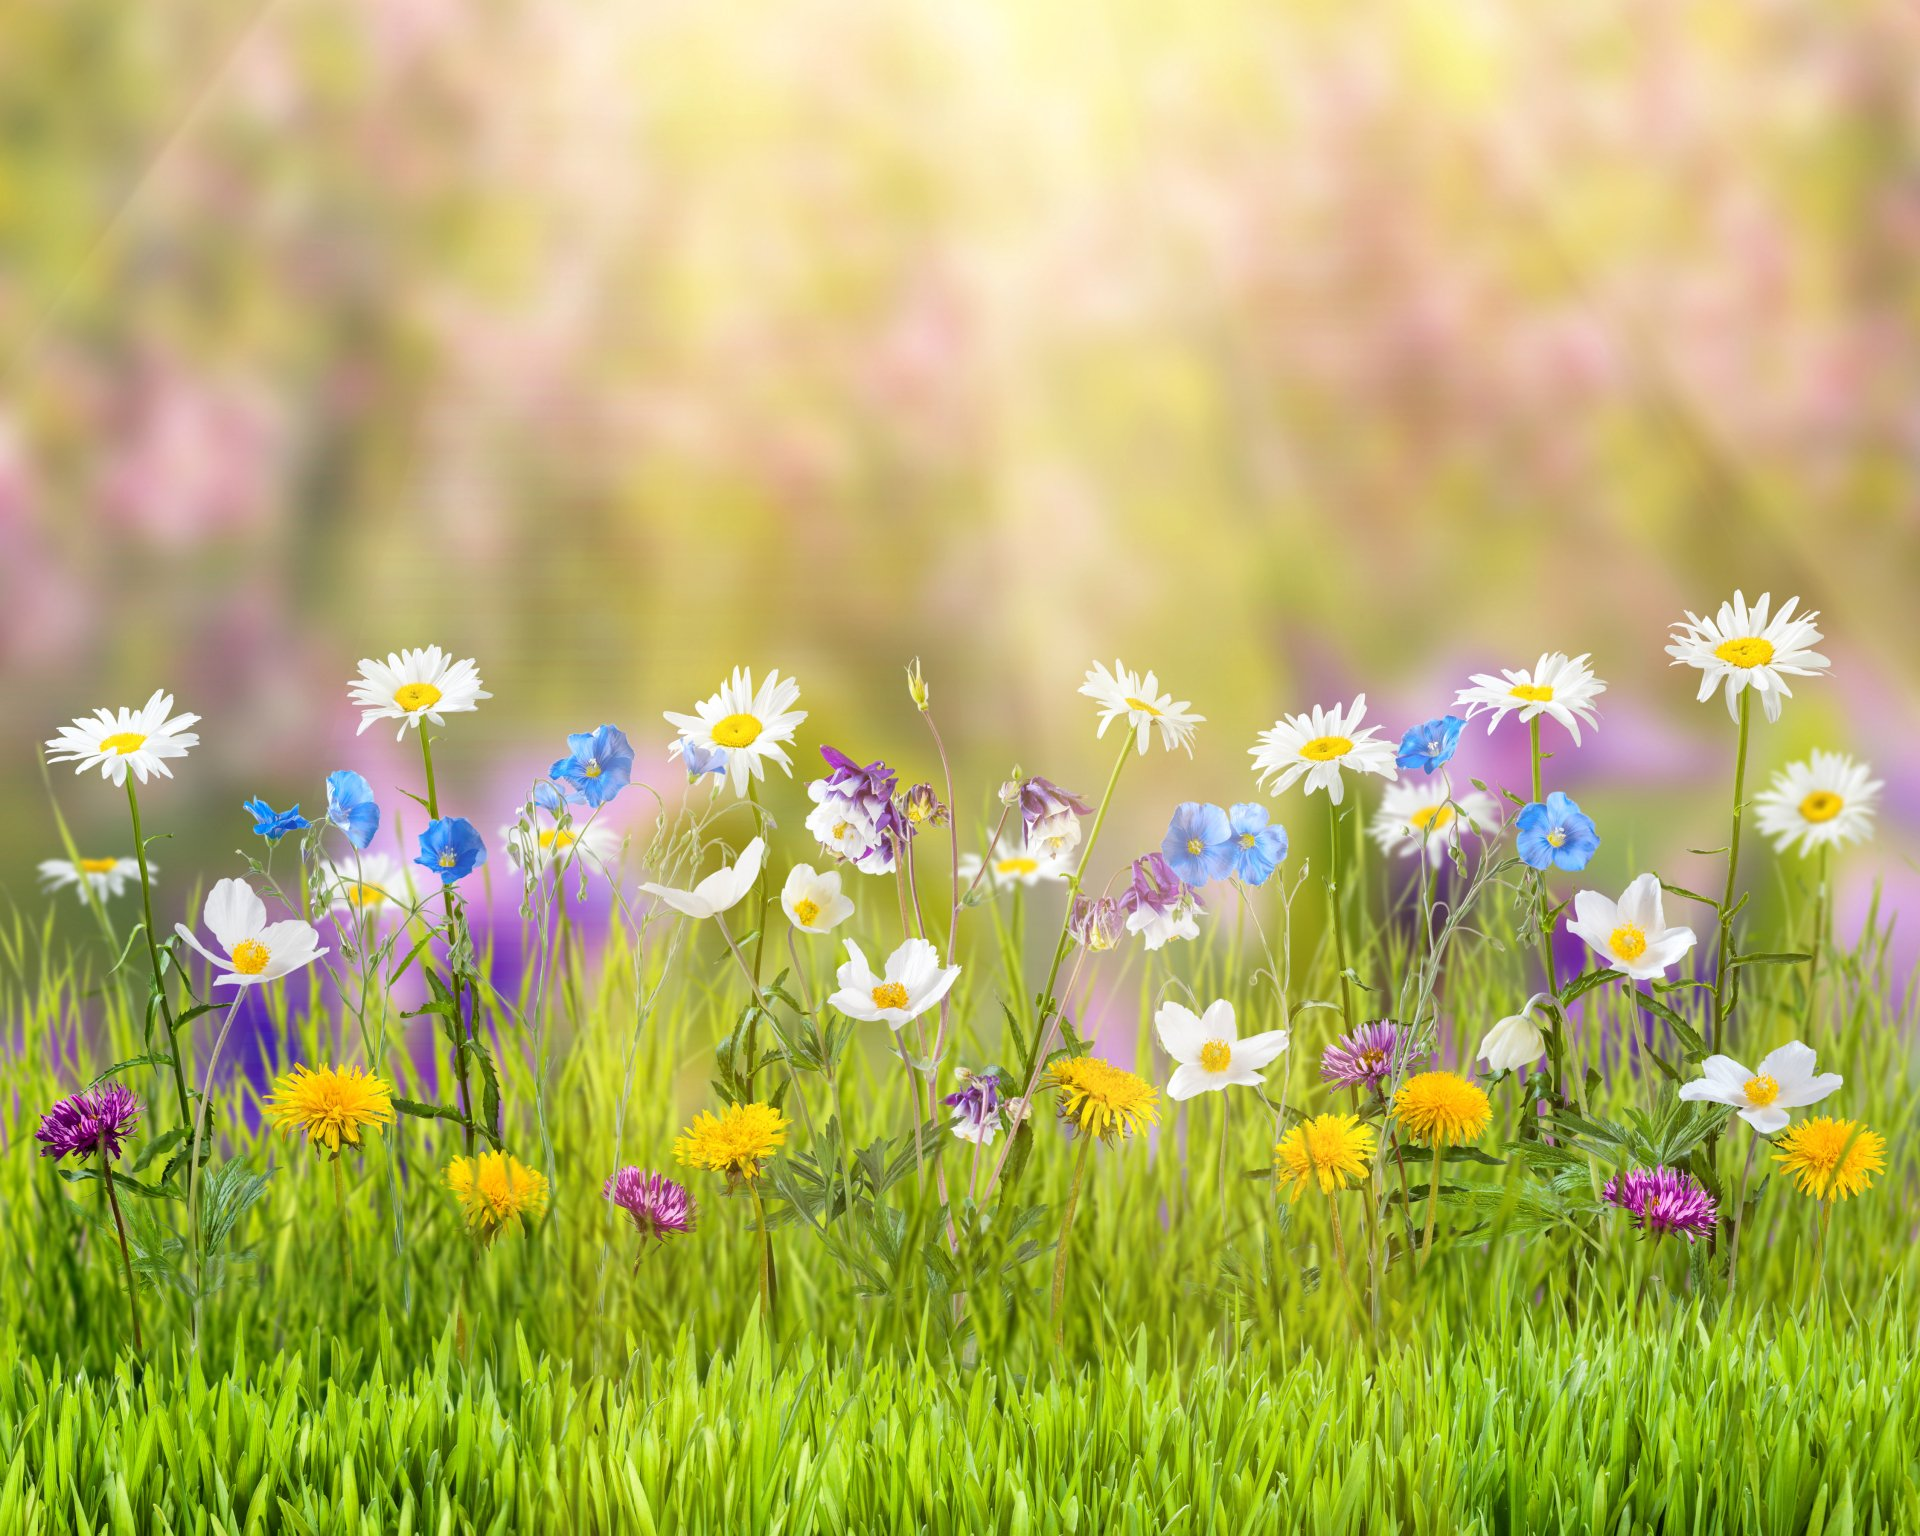 Earth - Spring  Nature Flower Sunny Grass White Flower Yellow Flower Wallpaper